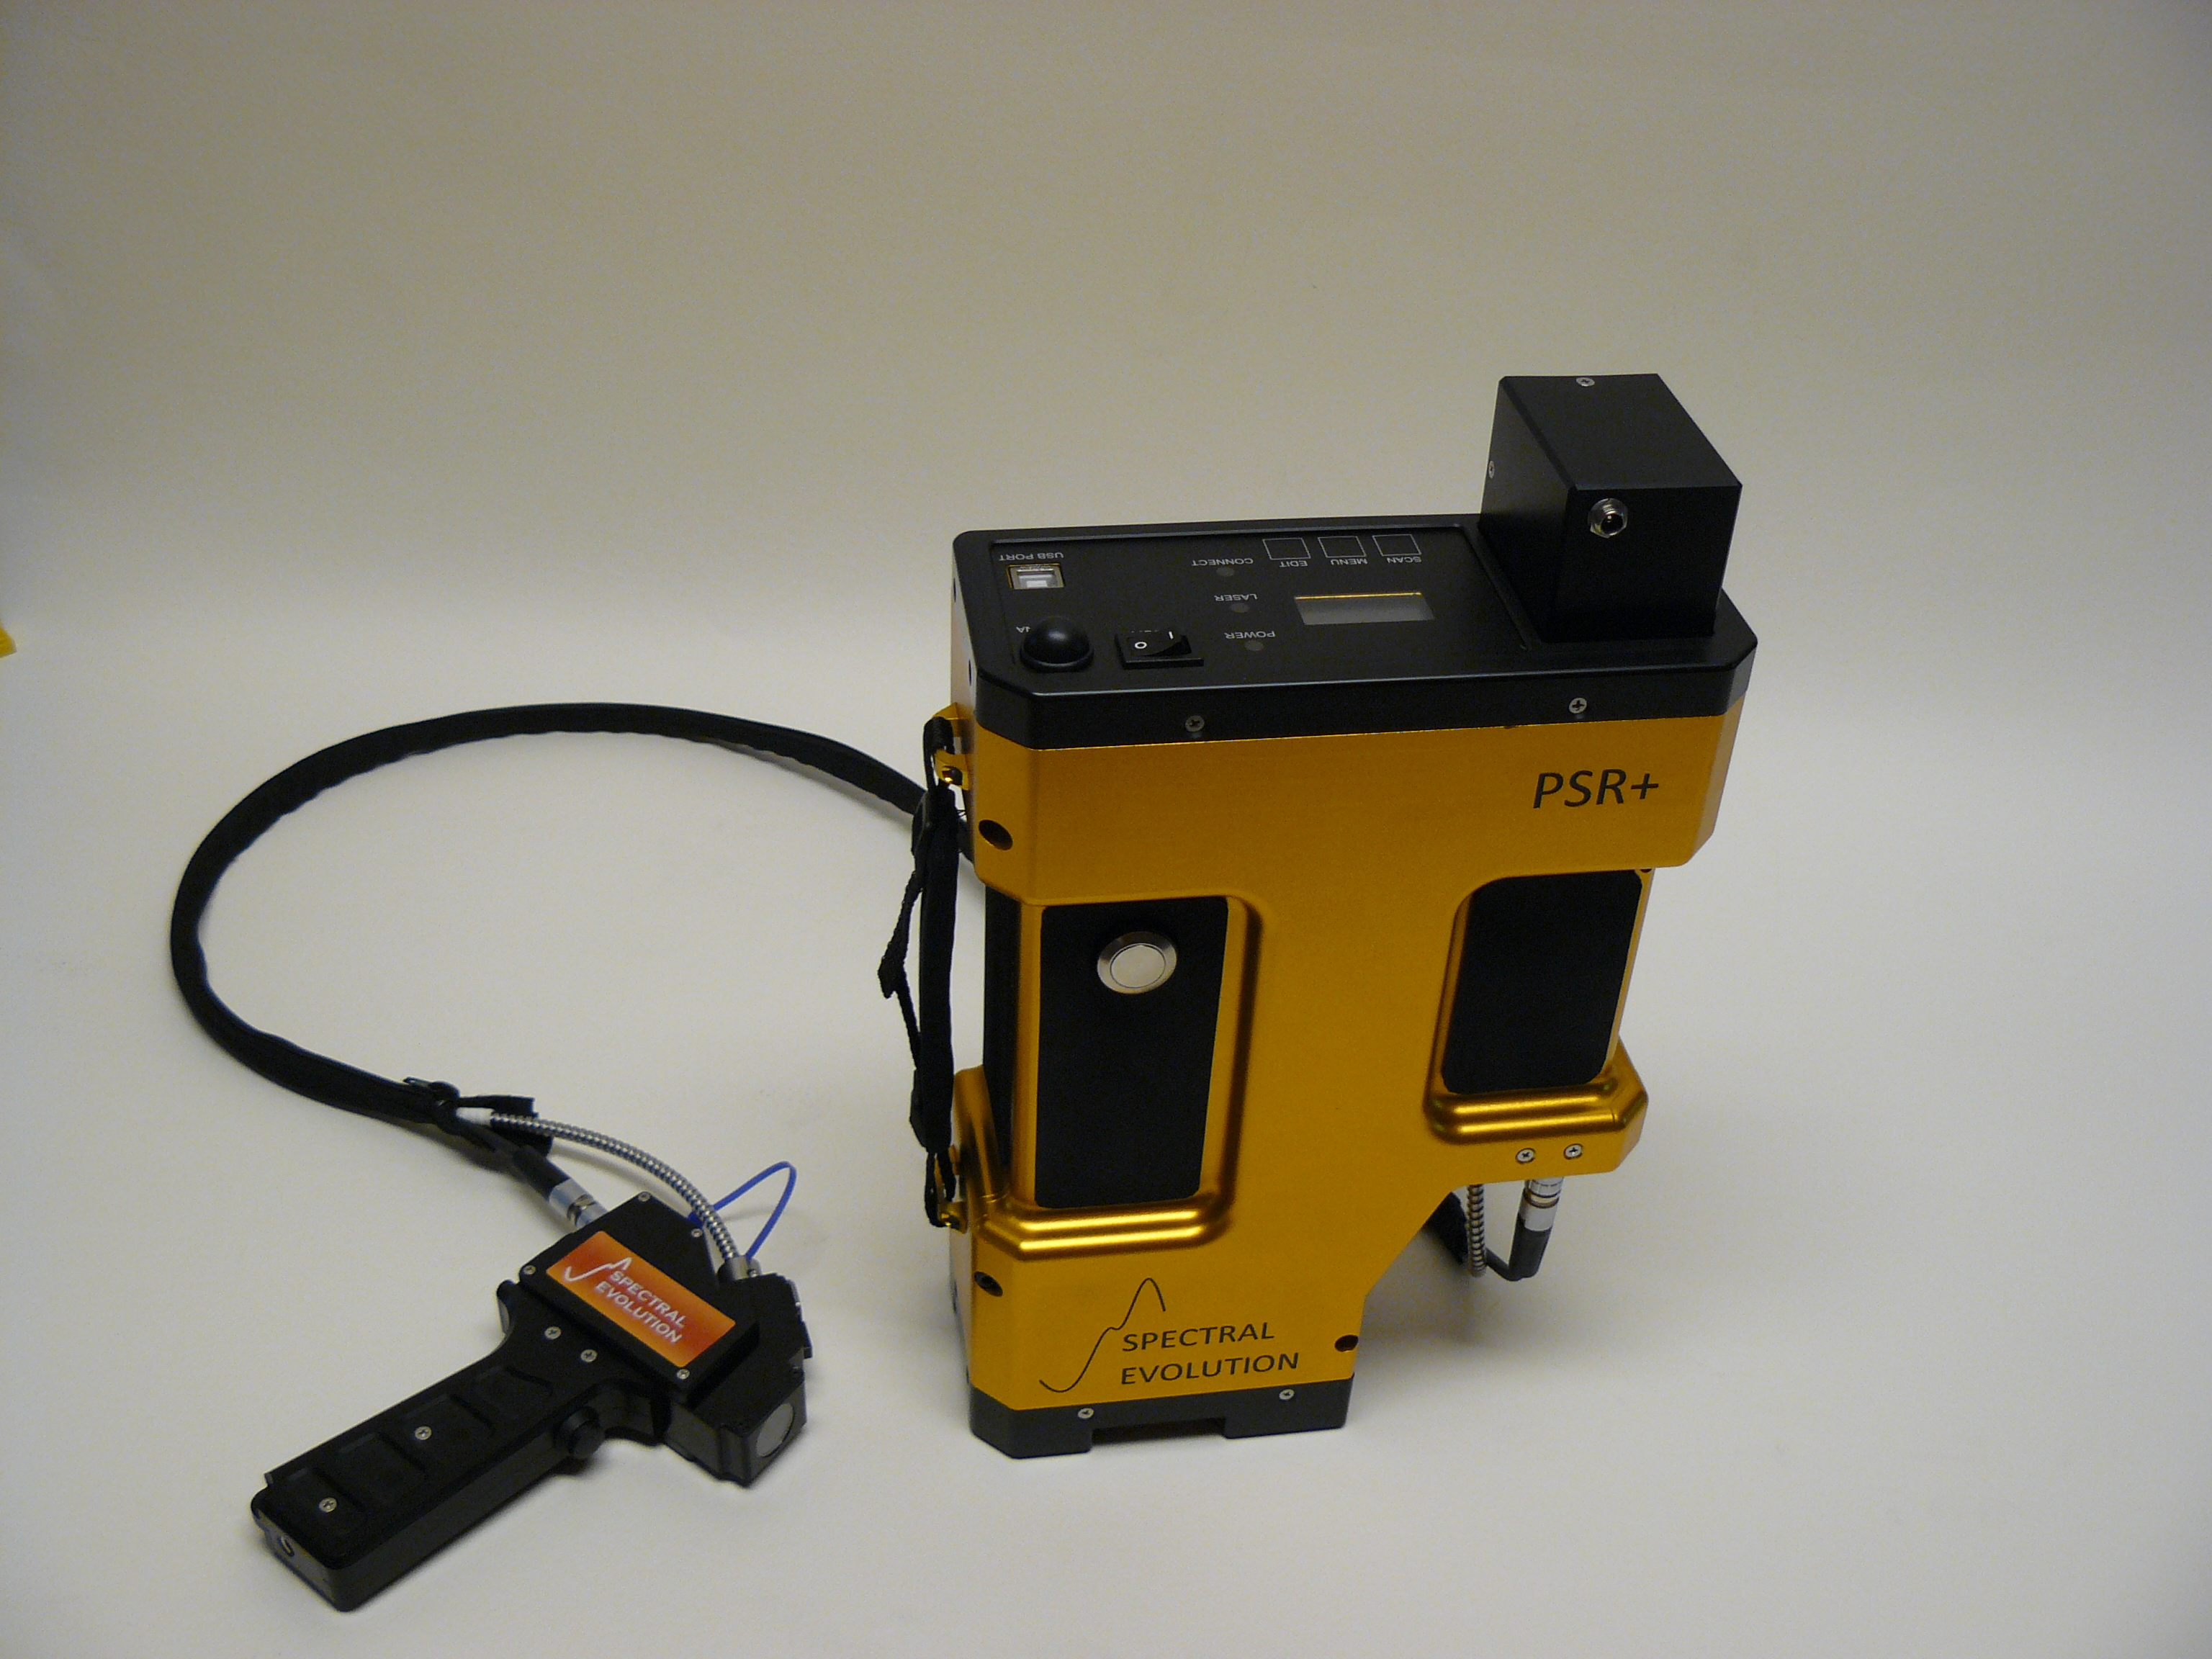 PSR+ field spectroradiometer with contact probe